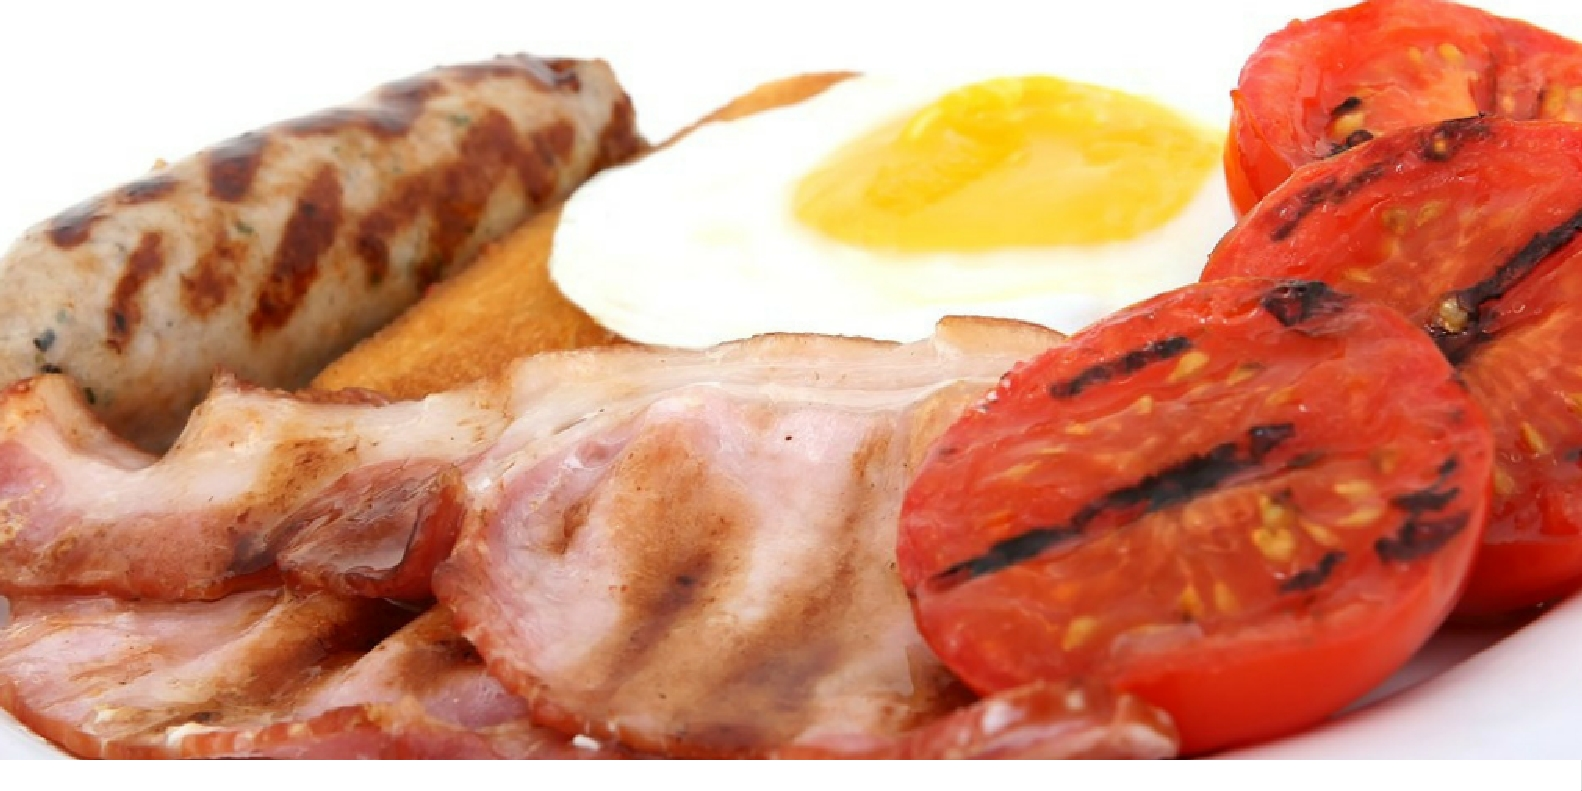 How Does A High Fat Diet Impact Colon Cancer Risks Cancer